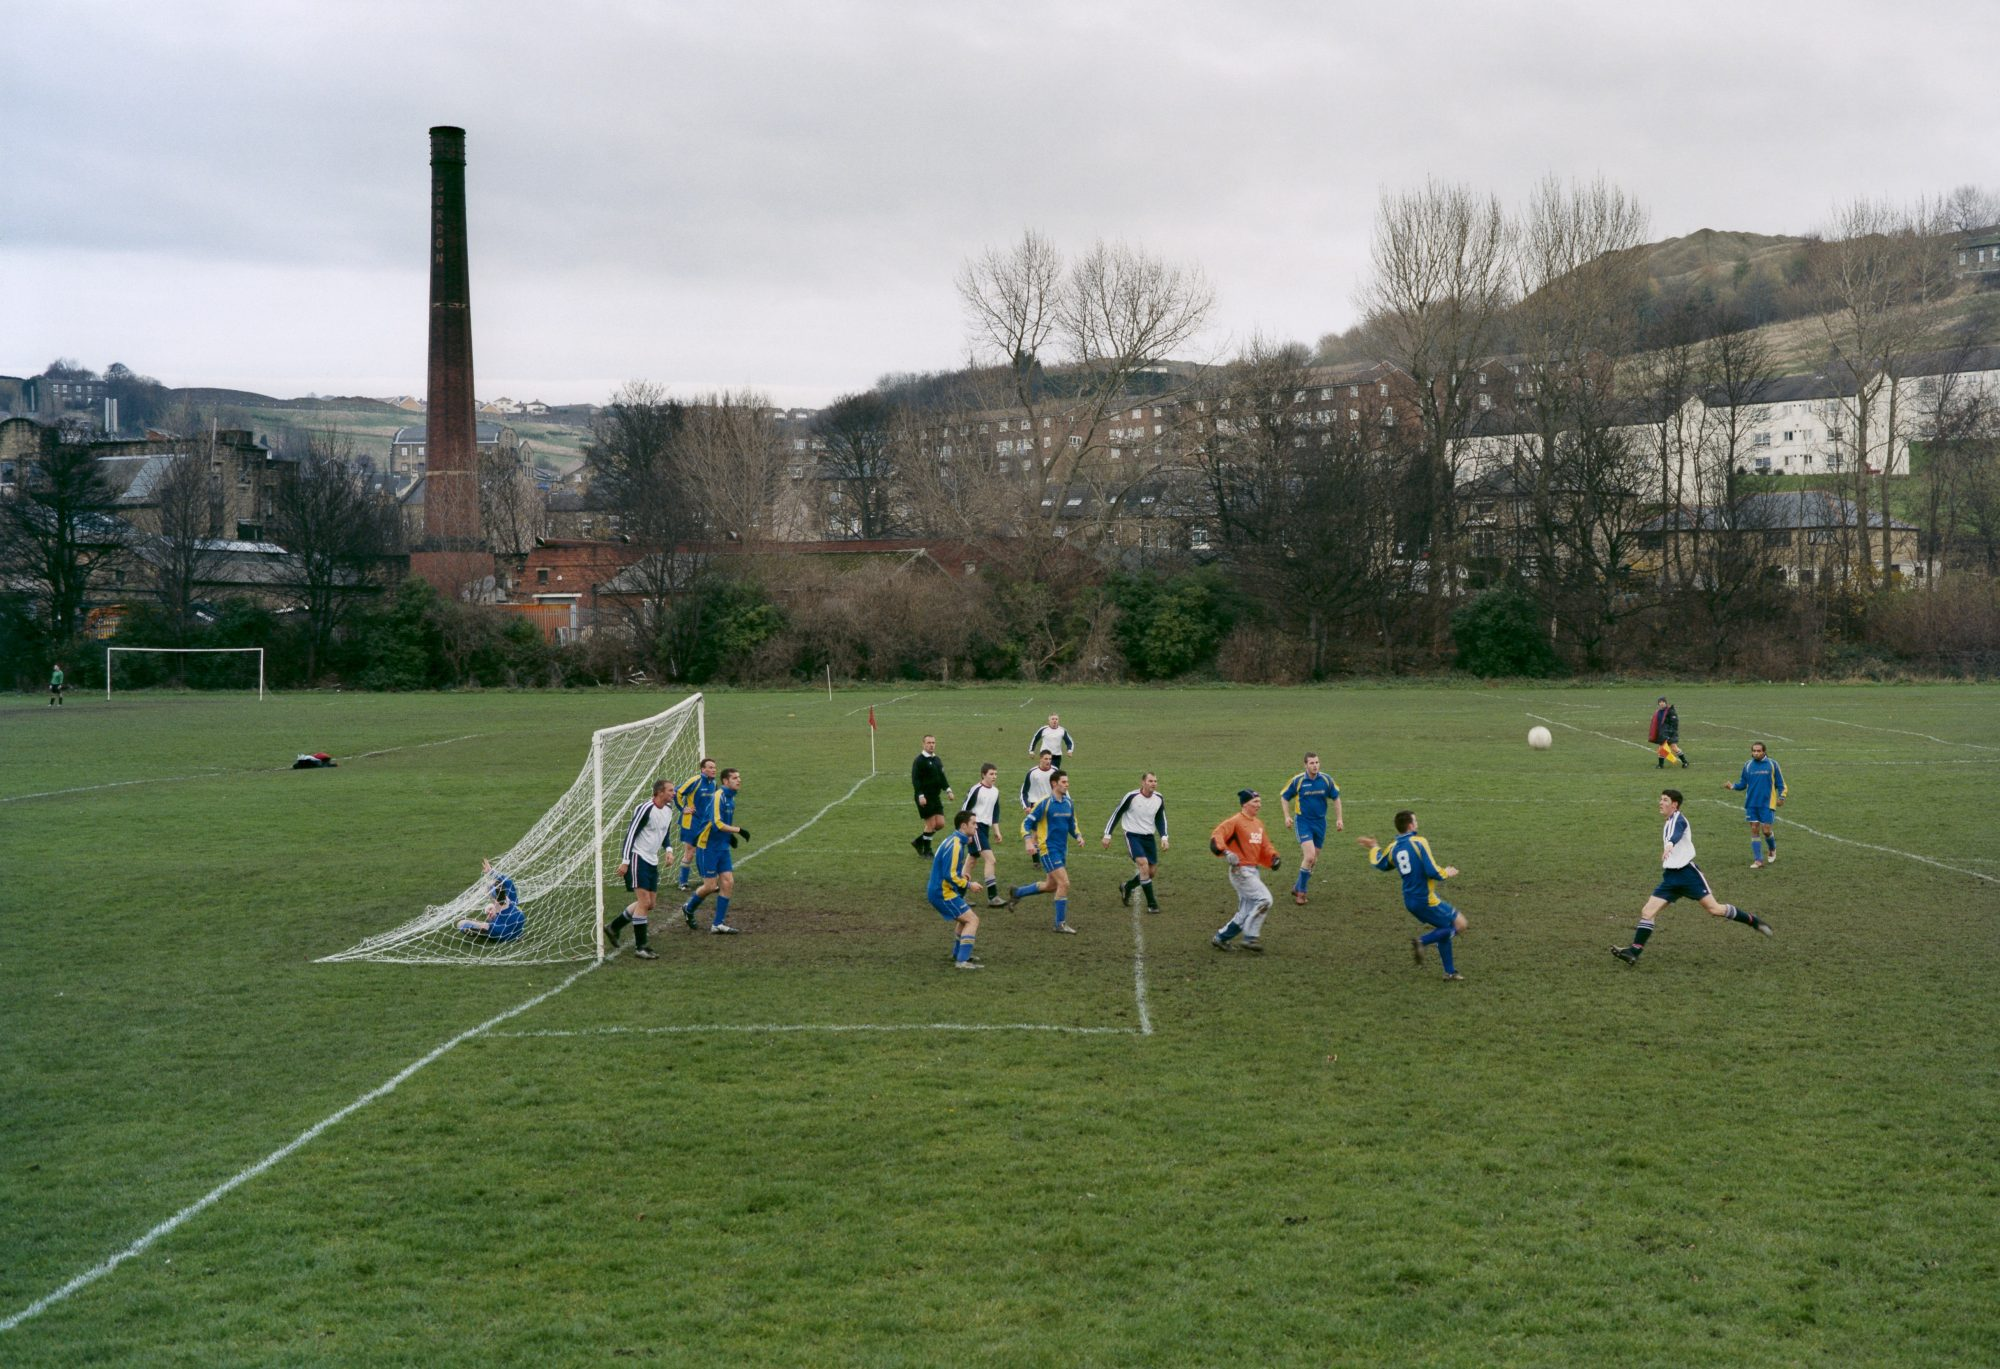 Bradford, England 31-10-2004. Woodman Rovers - New Inn: 4-1, Bradford Sunday Alliance Football League, Division 2B. From European Fields © Hans van der Meer/ Hollandse Hoogte